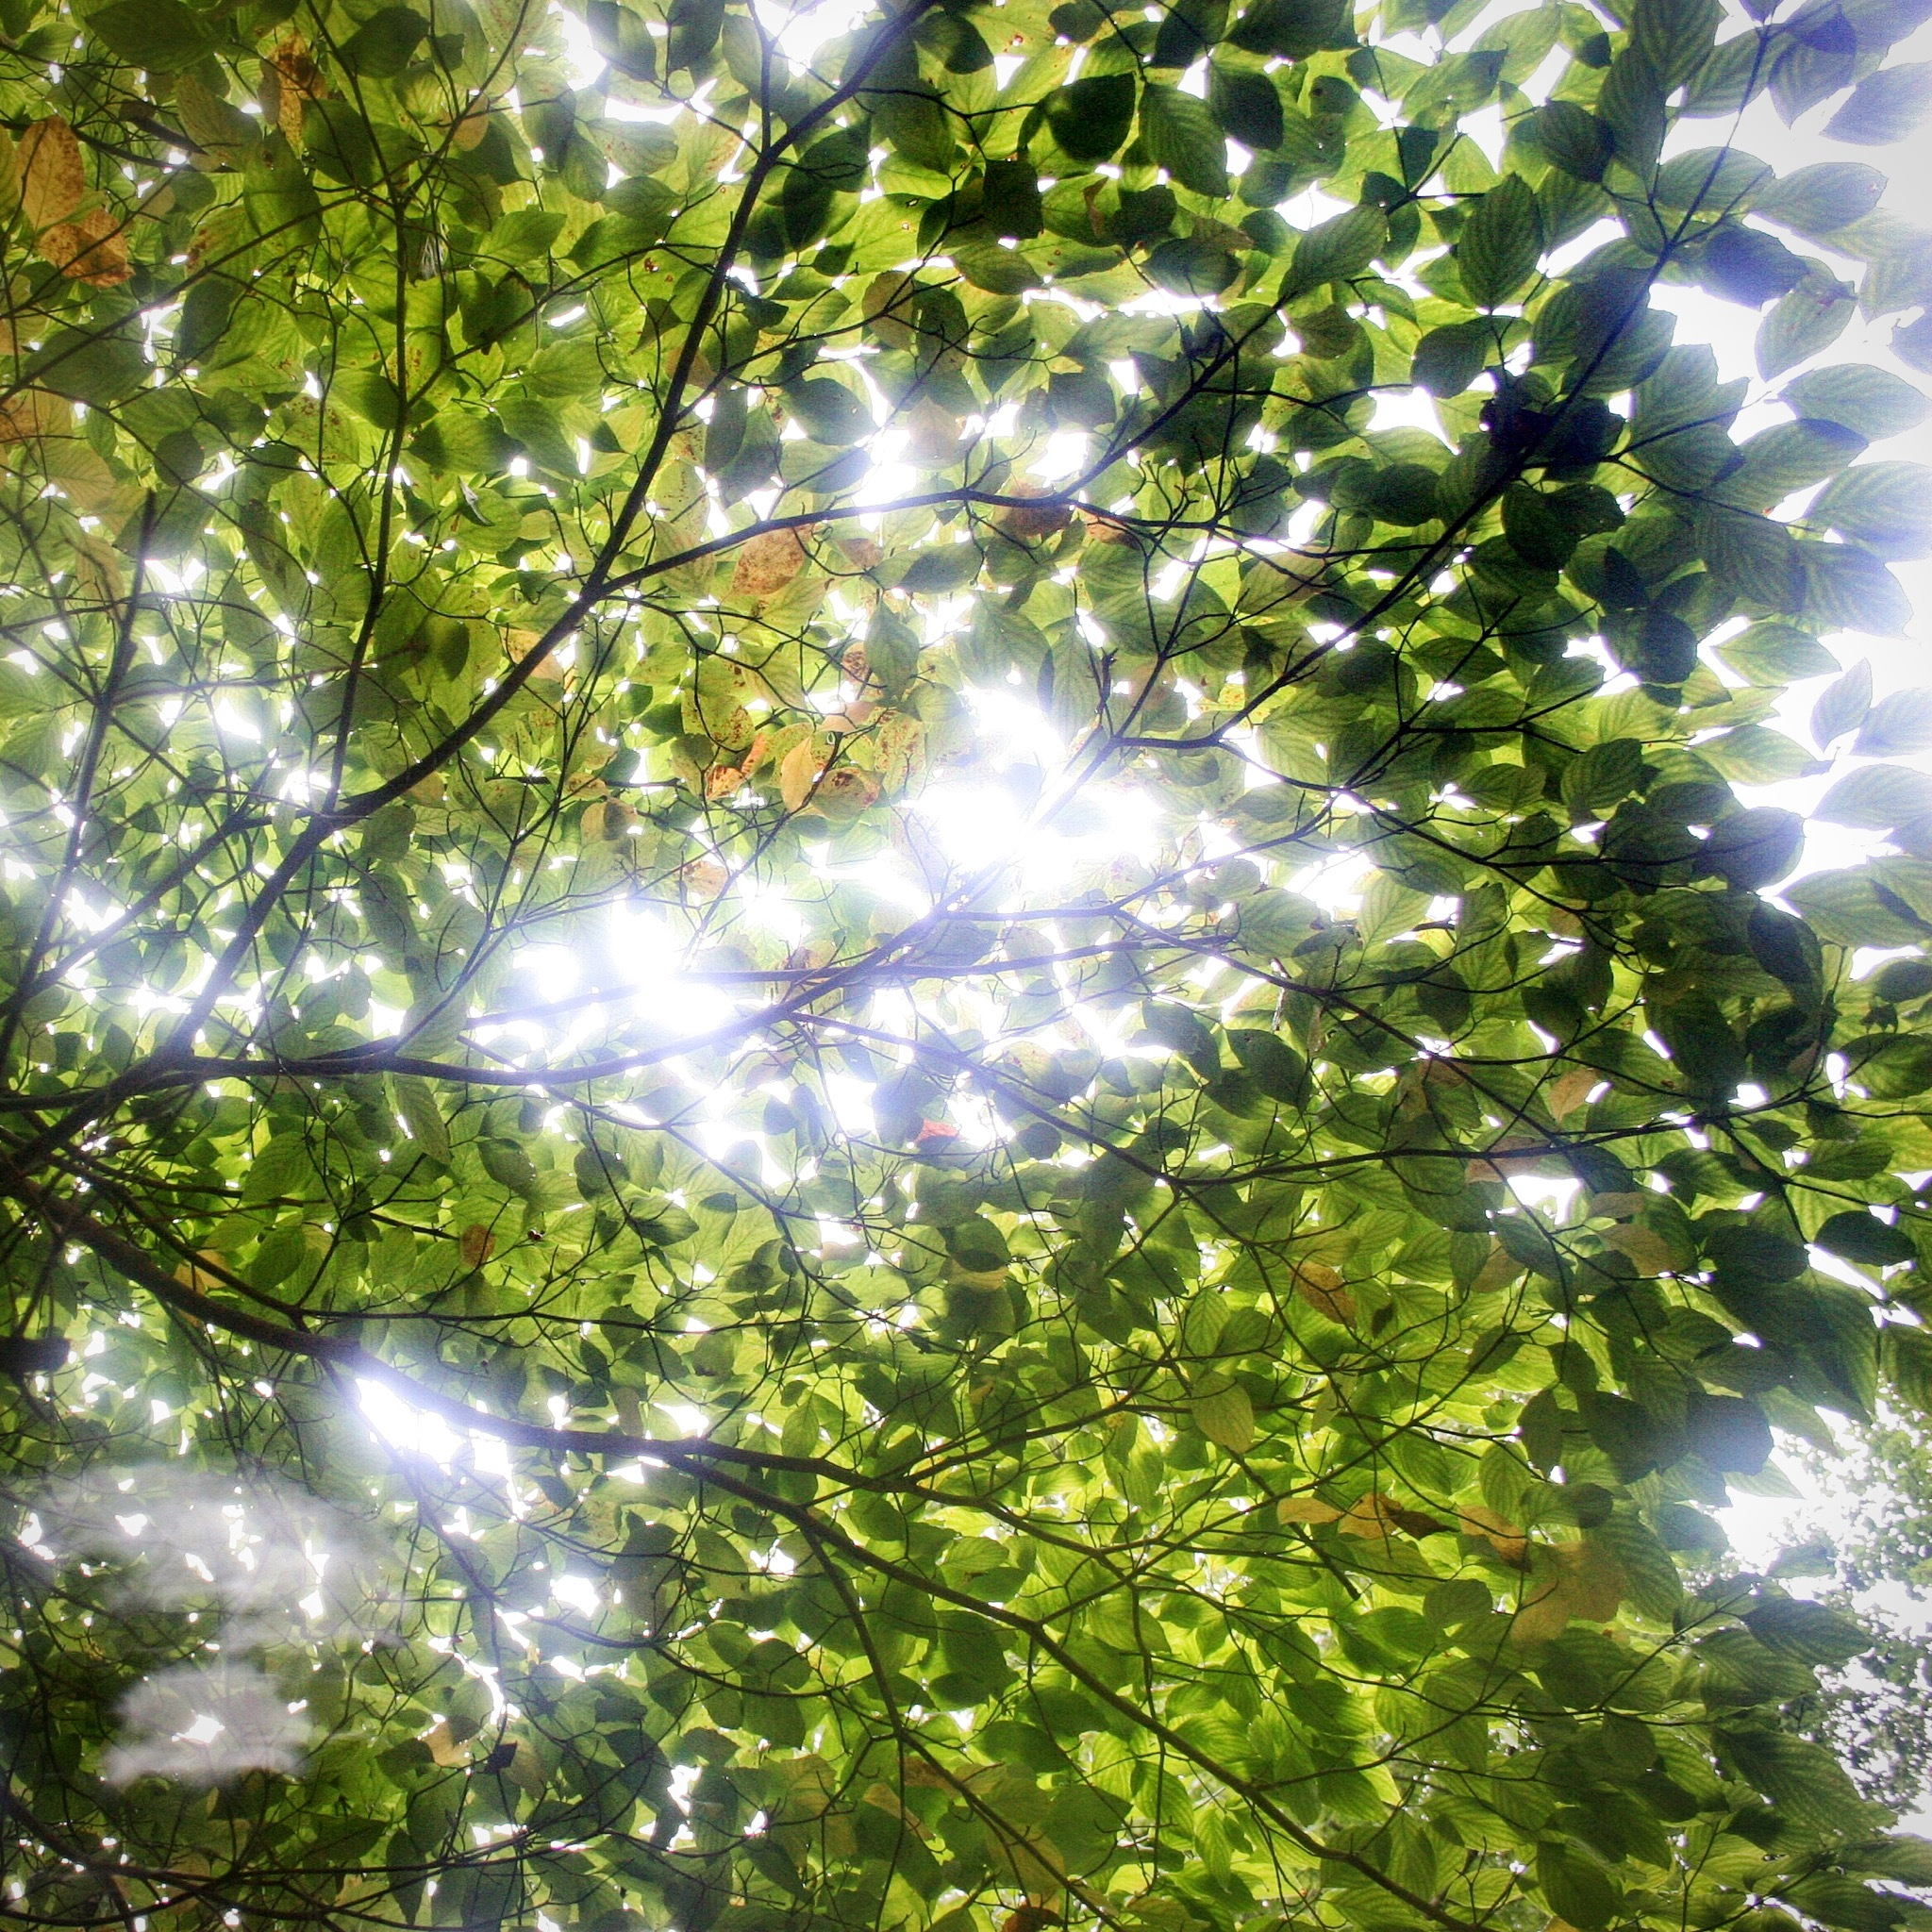 Light through the leaves by Diego Alfonso Contreras